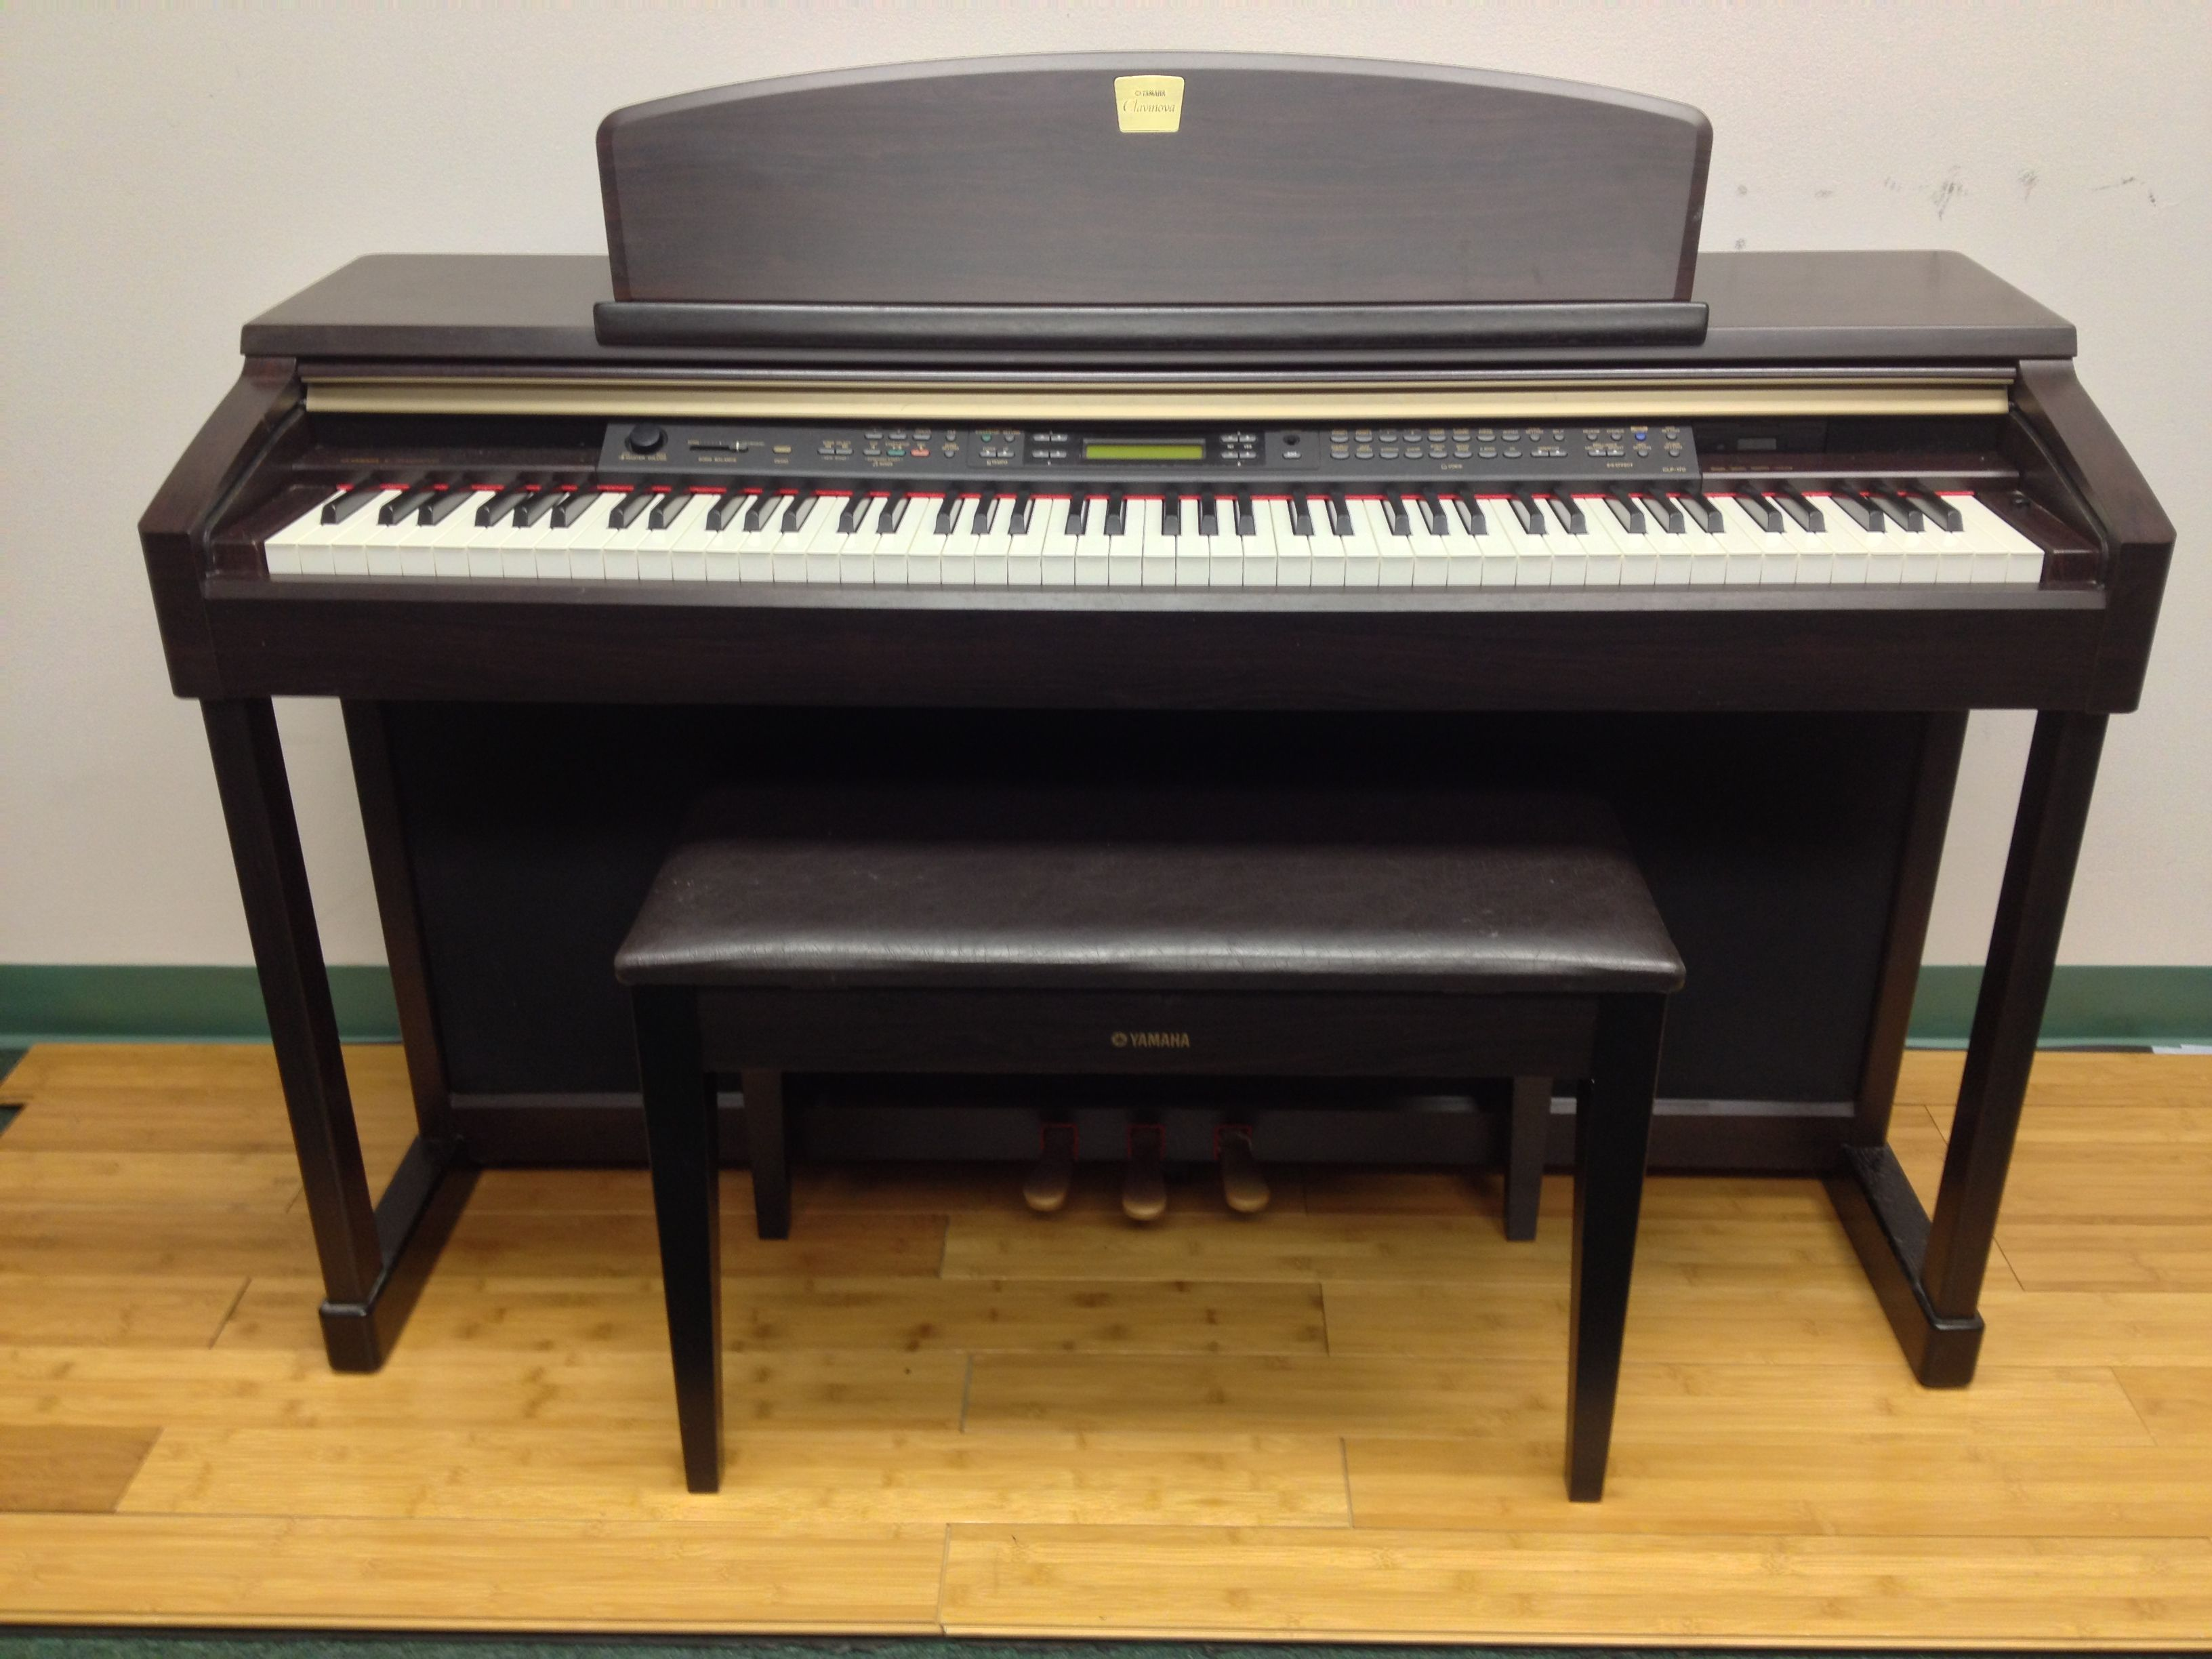 yamaha clavinova clp 170 99 per month digital piano rentals dc pinterest digital piano. Black Bedroom Furniture Sets. Home Design Ideas